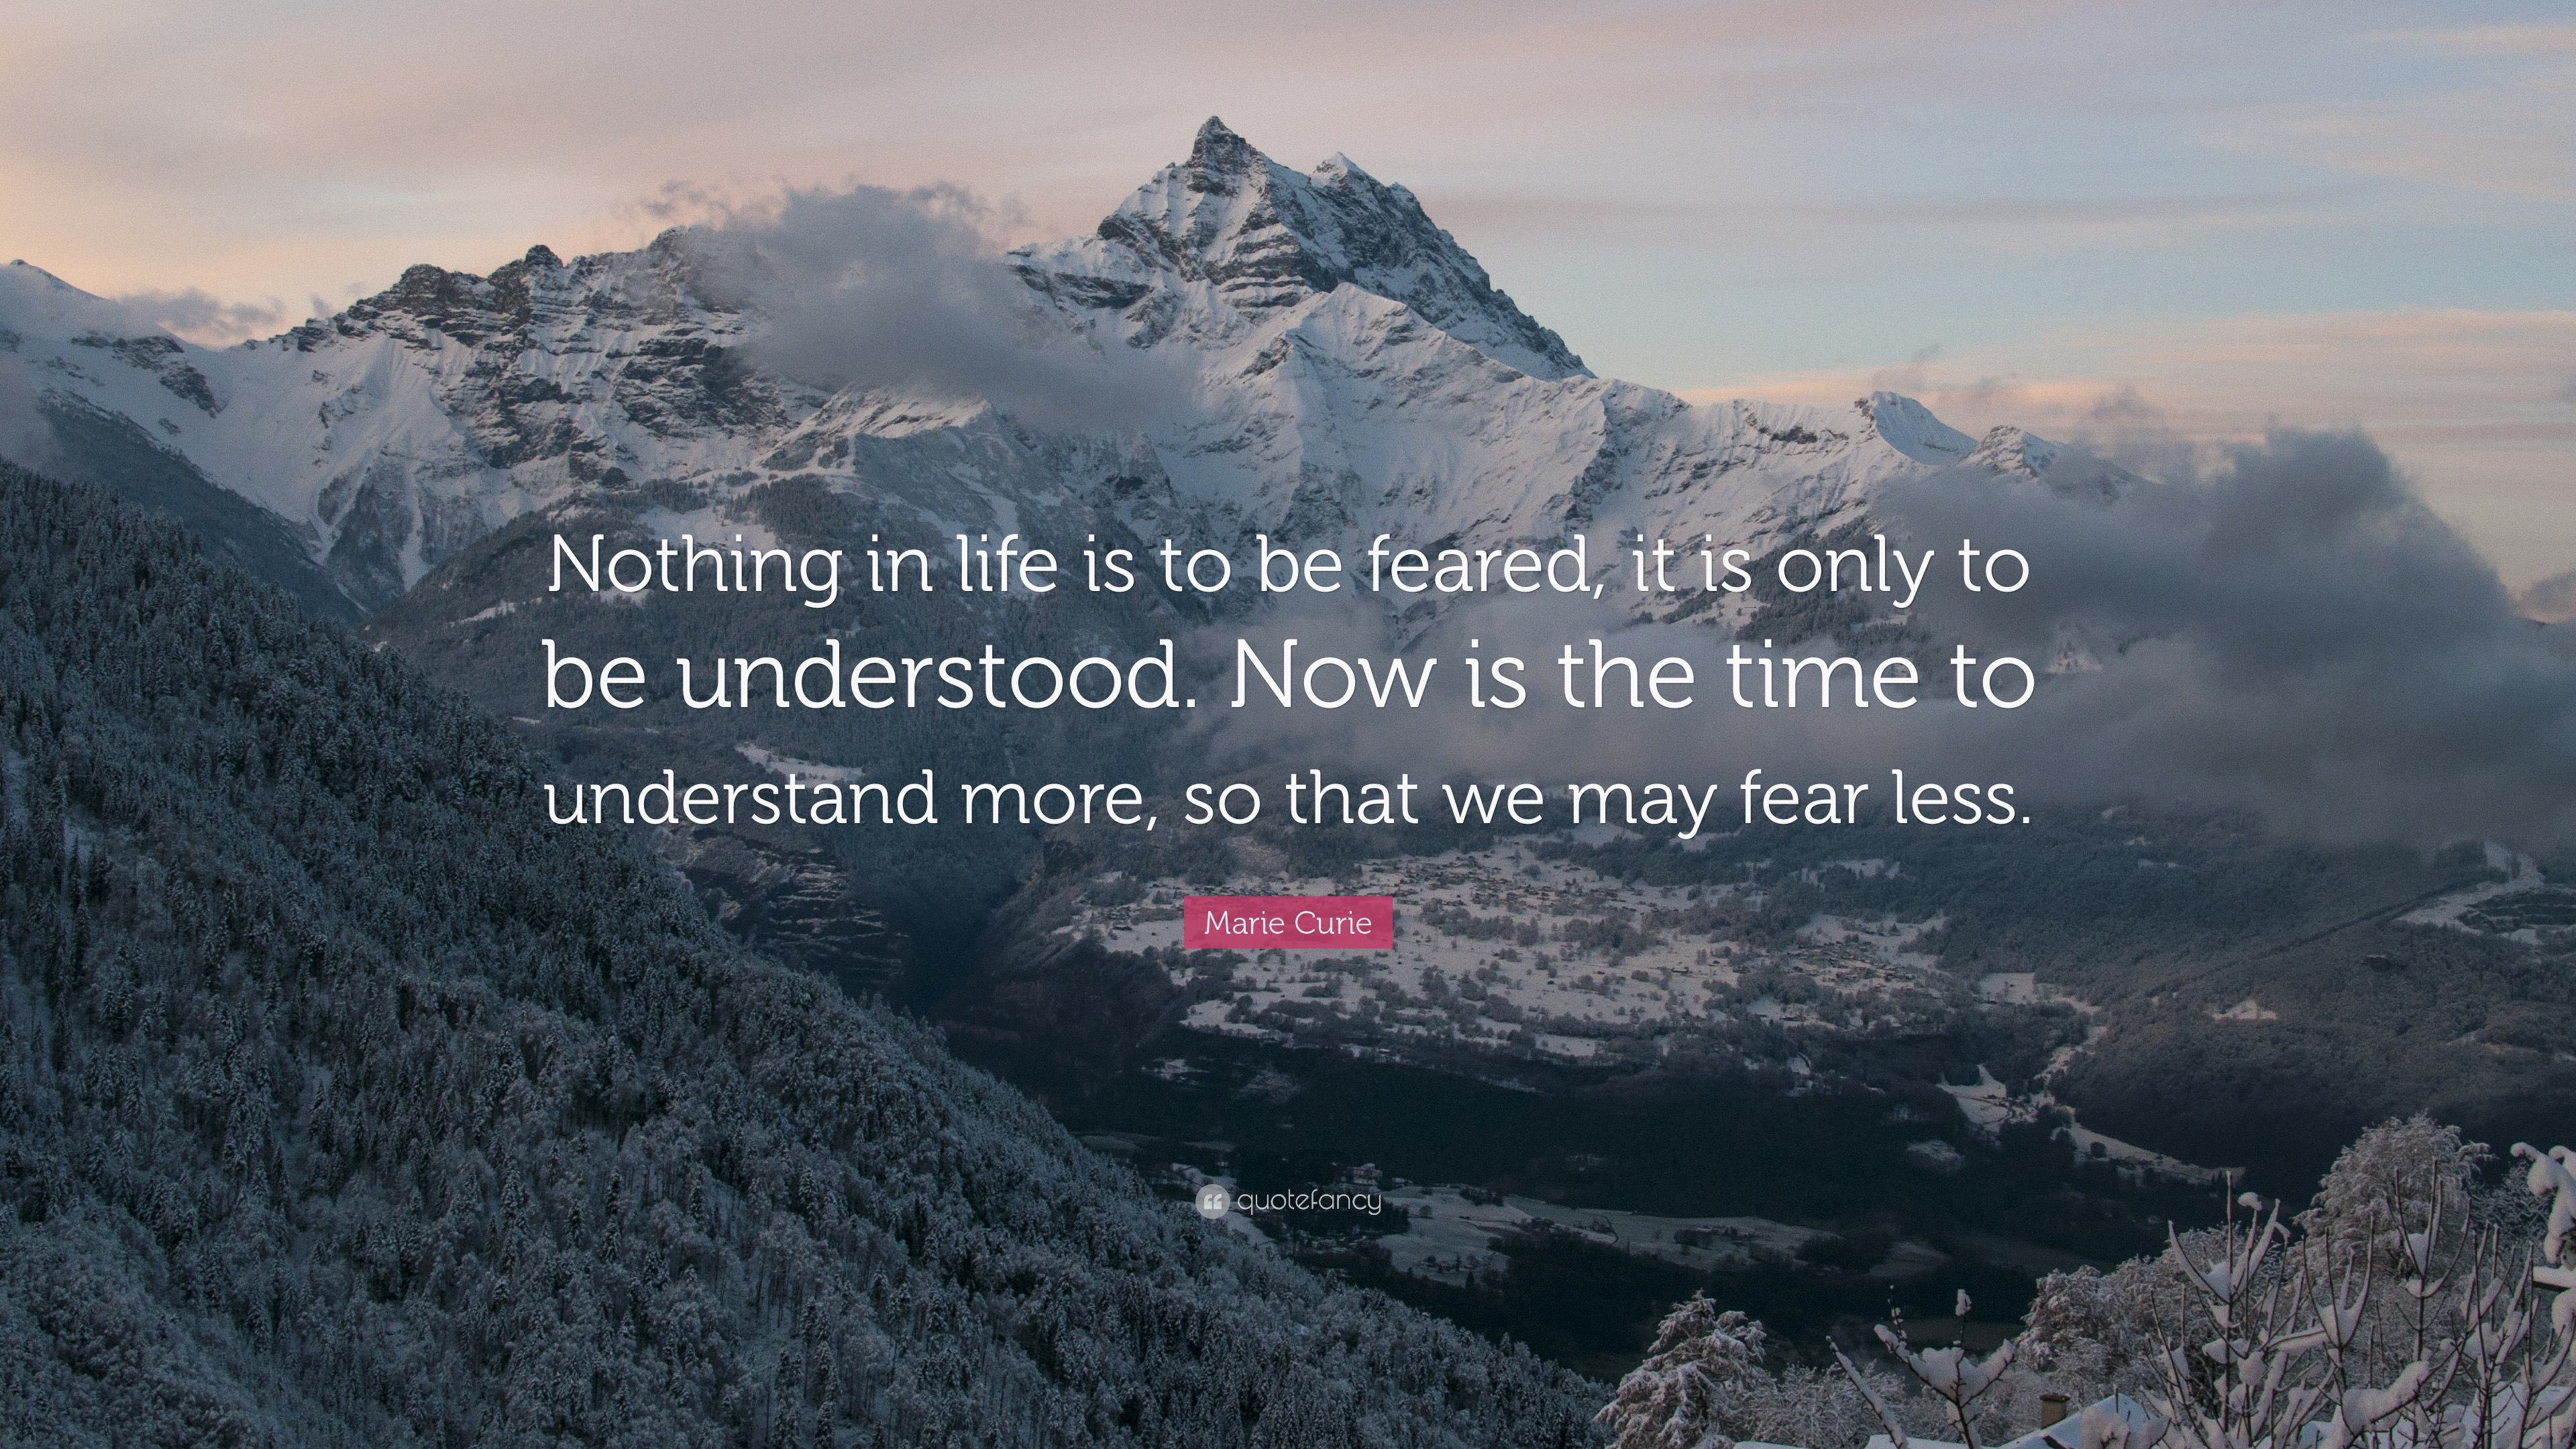 Fantastic Wallpaper Mountain Quote - 32747-Marie-Curie-Quote-Nothing-in-life-is-to-be-feared-it-is-only-to-be  HD_986920.jpg